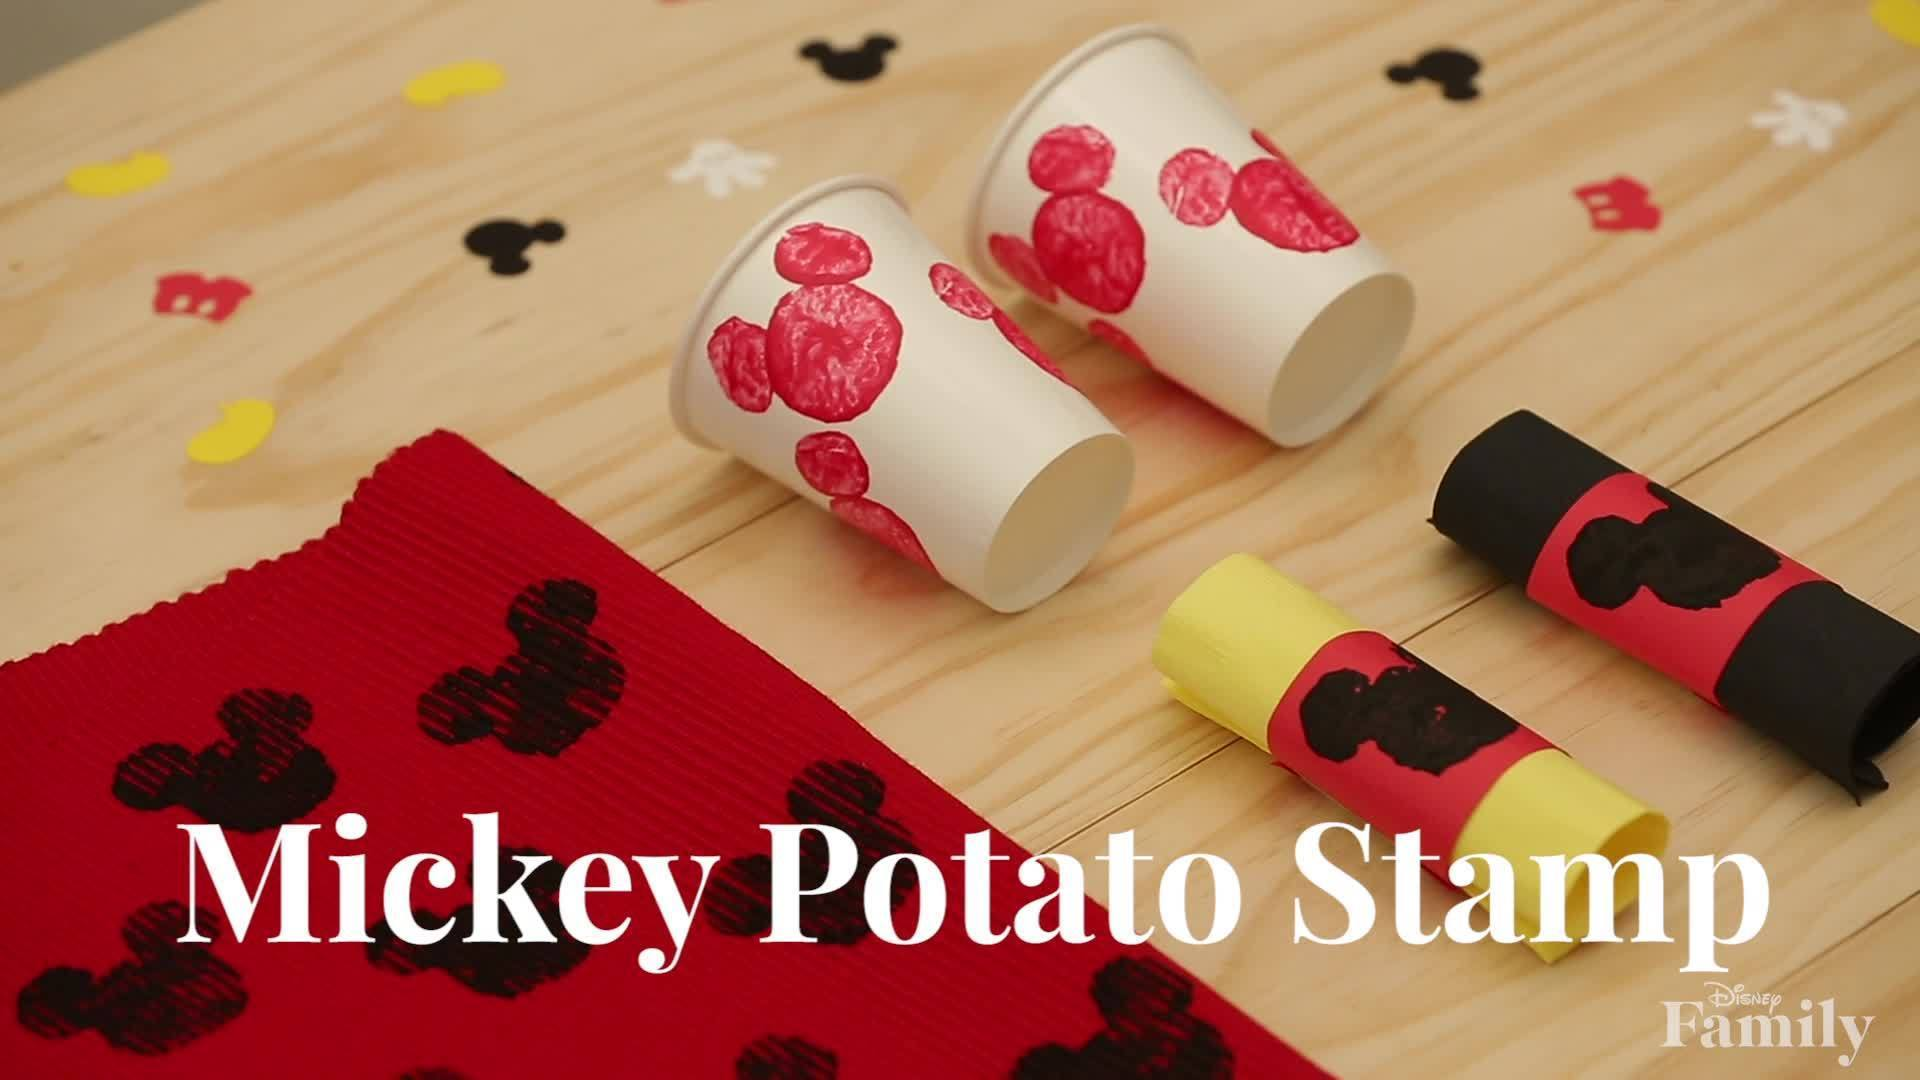 Disney Family: Mickey Potato Stamp DIY